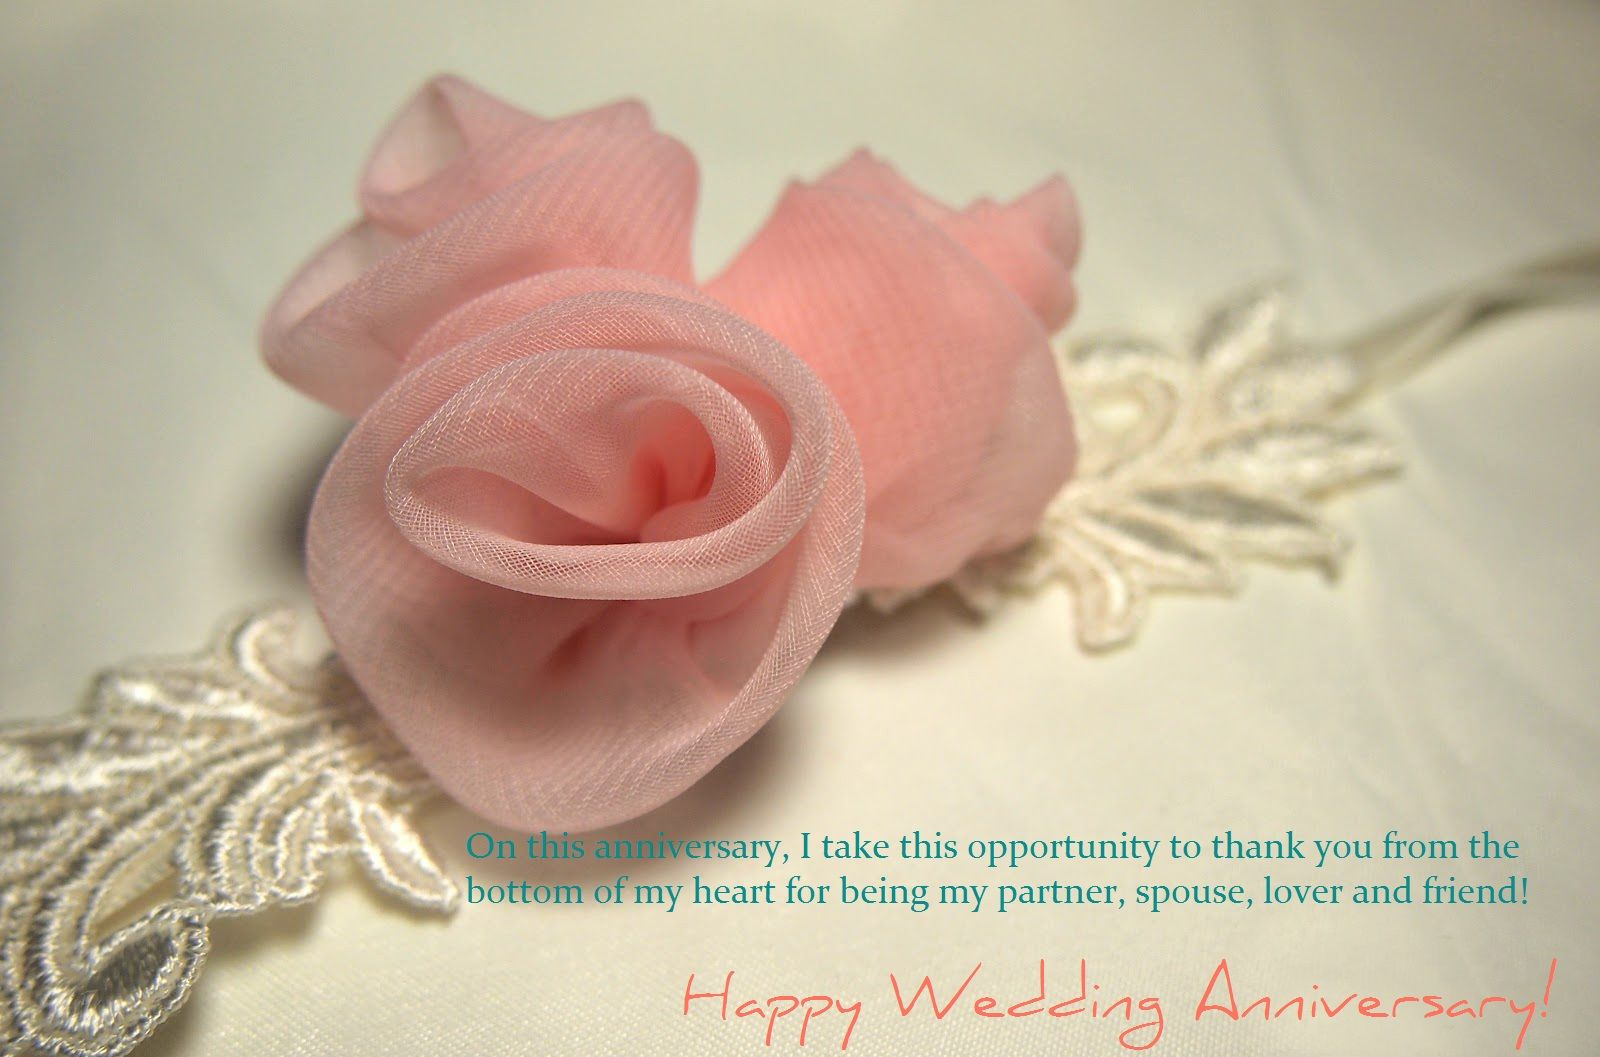 happy anniversary wishes for husband (With images